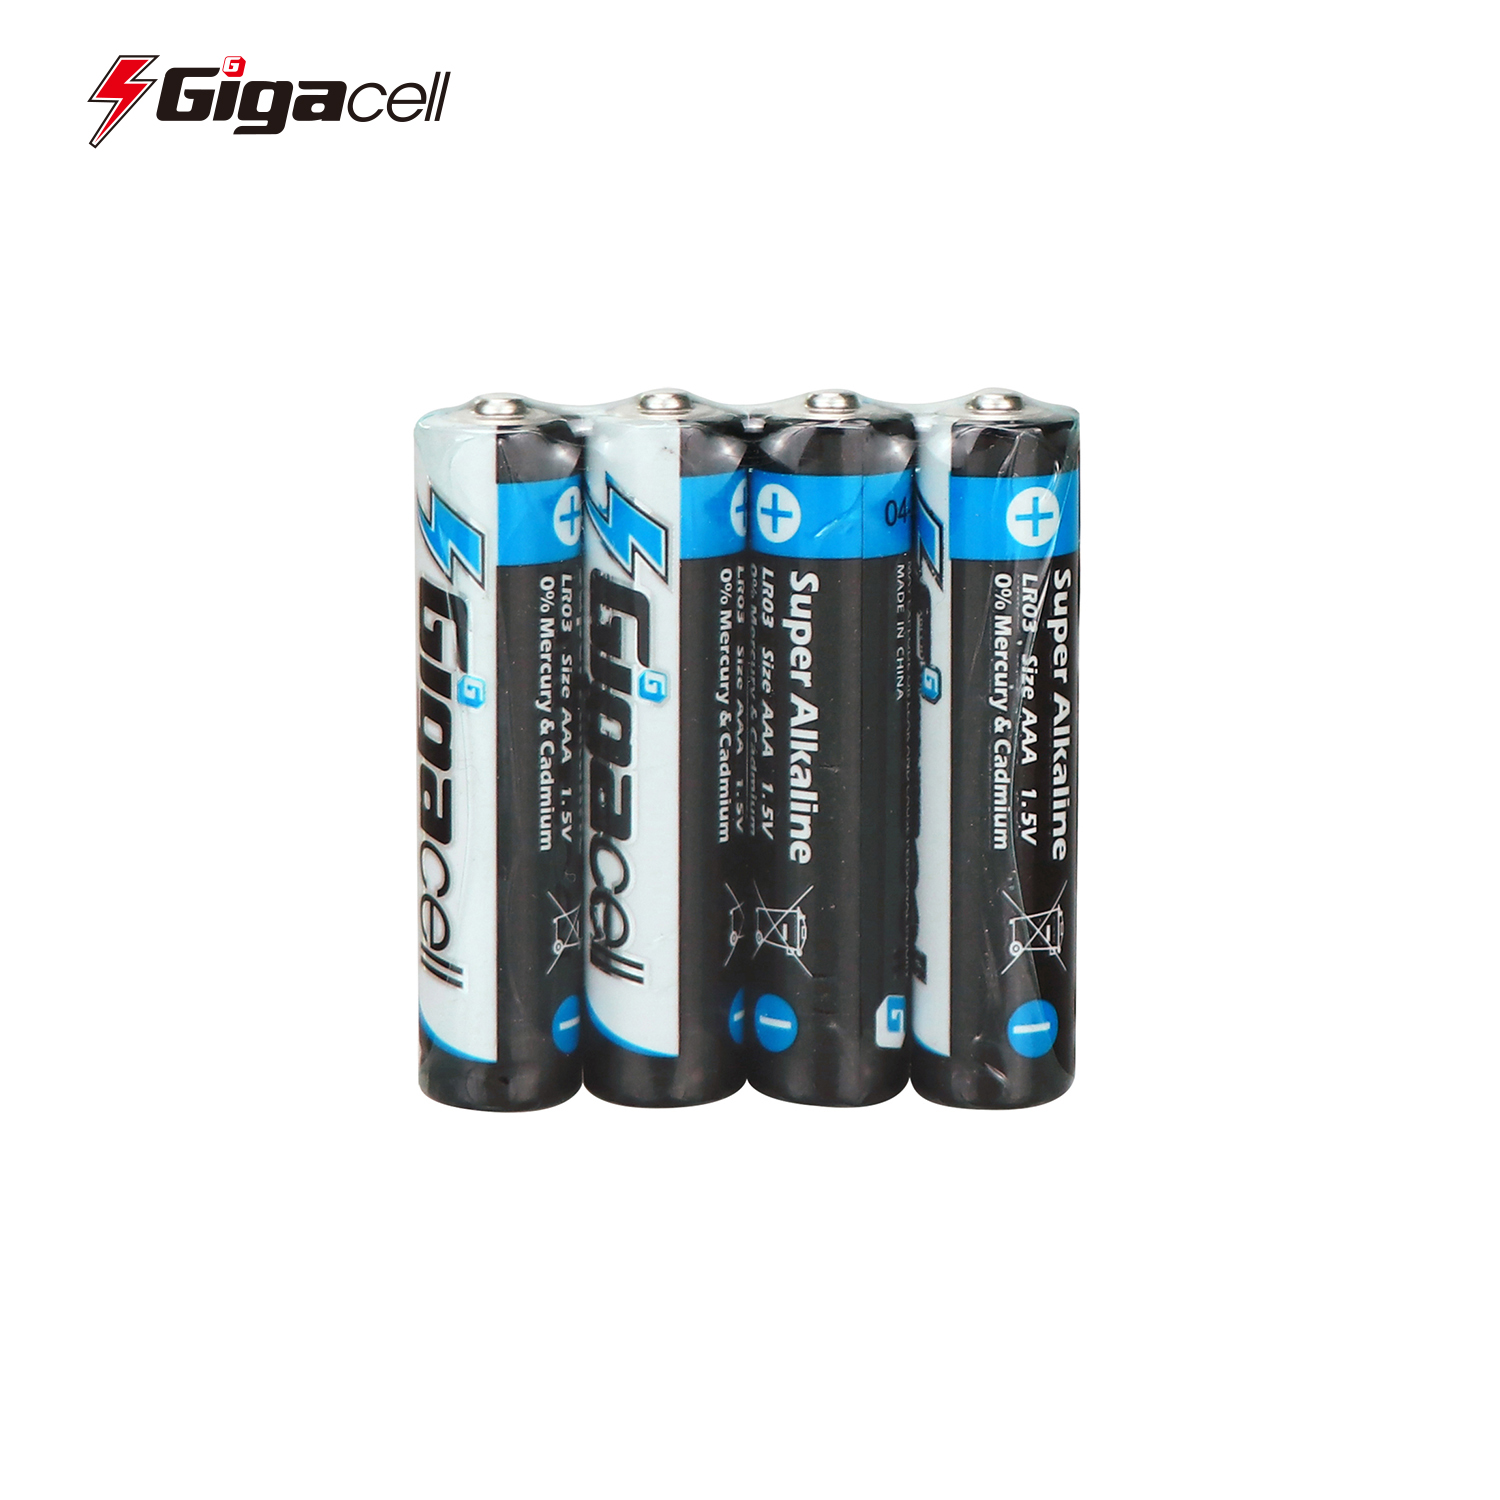 New hot selling point ! Super alkaline LR03 Dry battery